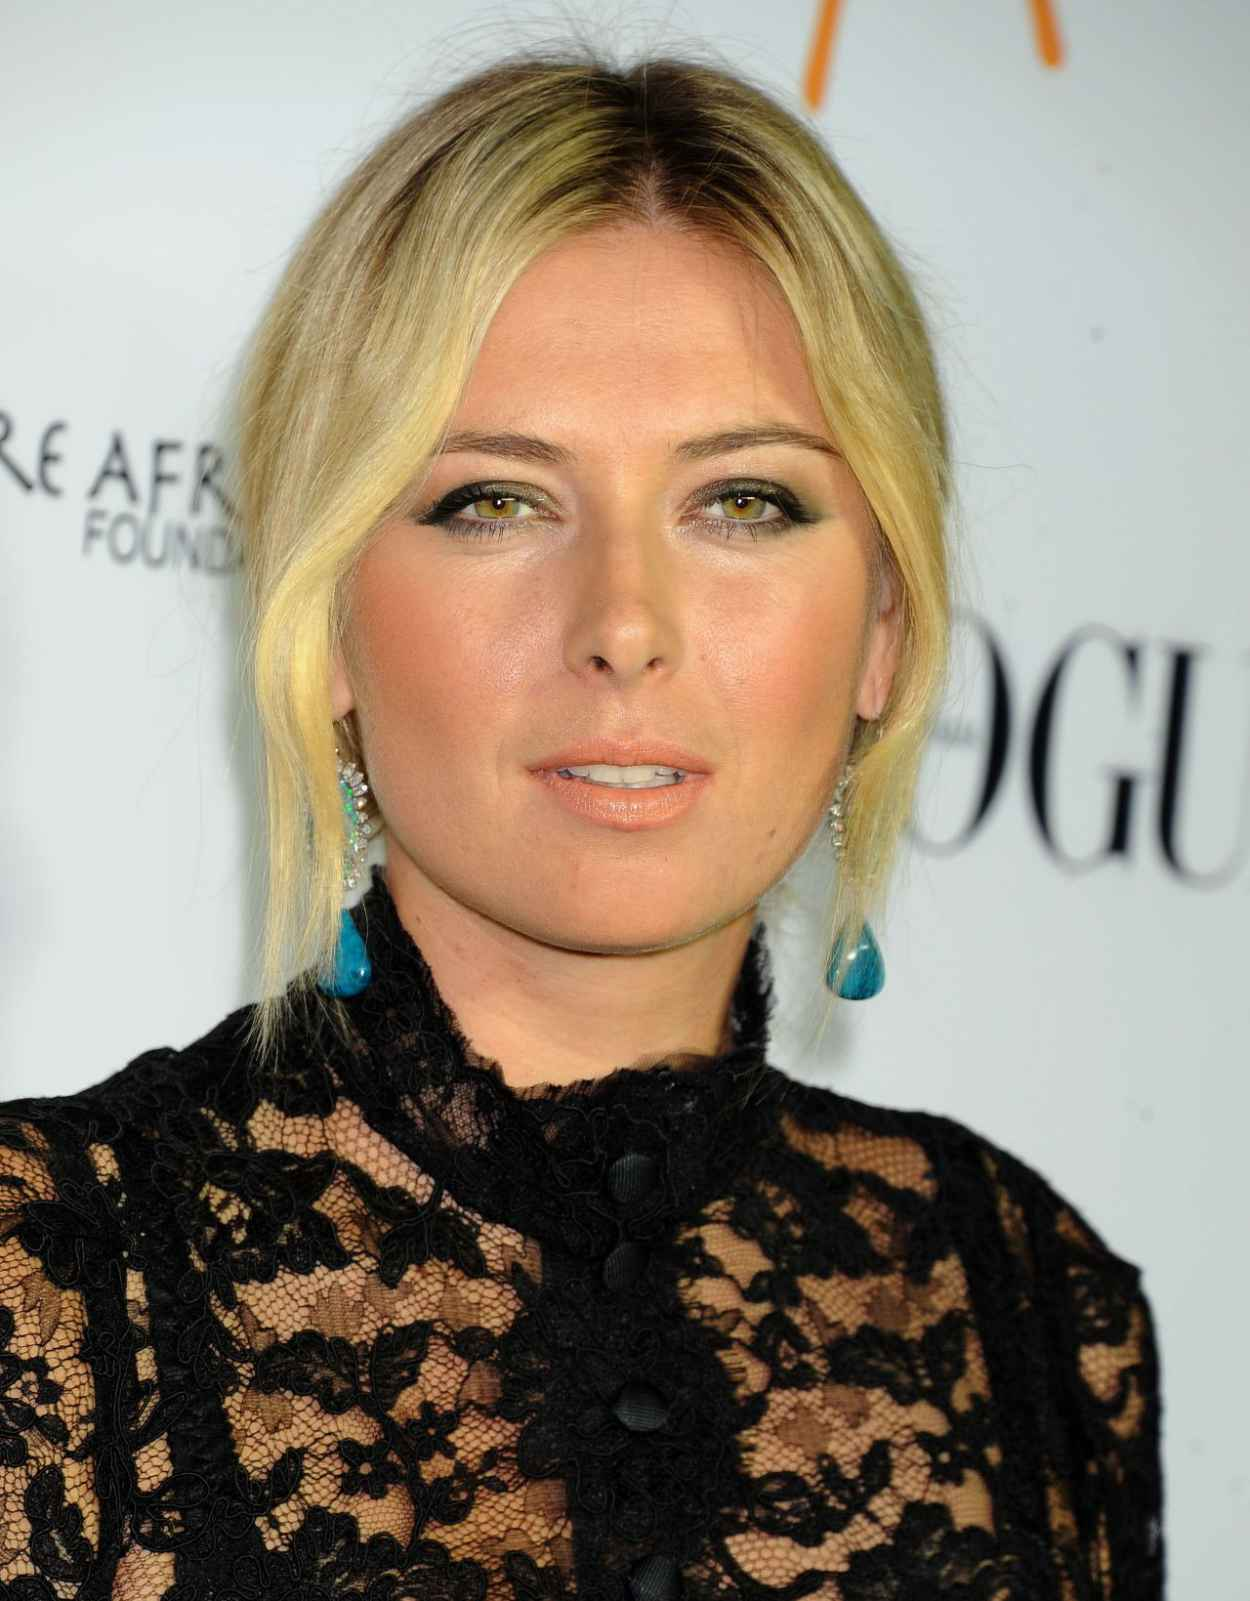 Maria Sharapova at Dream For Future Africa Foundation Gala-1